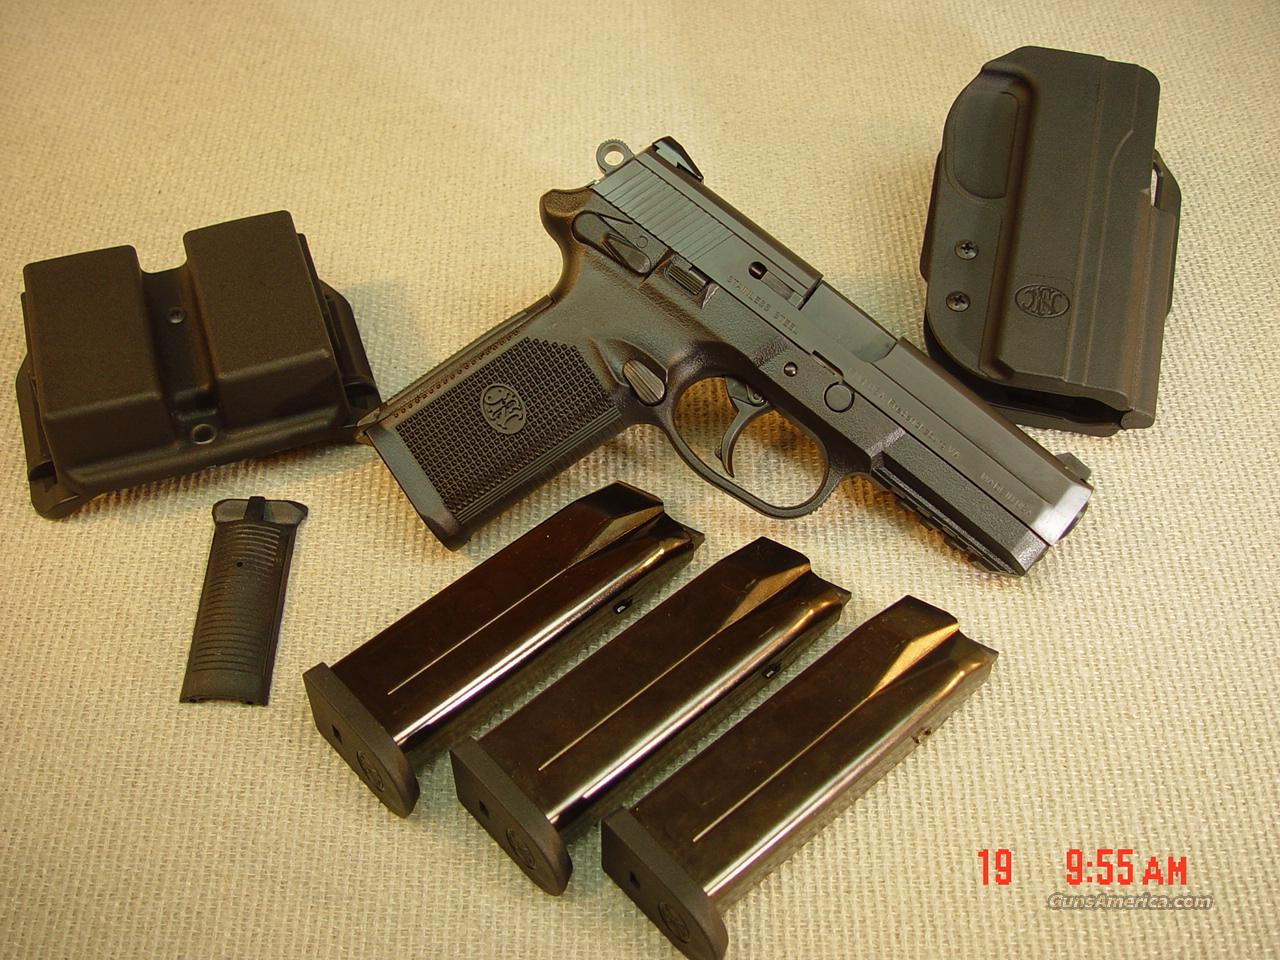 FN HERSTAL FNP-45ACP SEMI-AUTO KIT with 3 MAGAZINES  Guns > Pistols > FNH - Fabrique Nationale (FN) Pistols > FNP